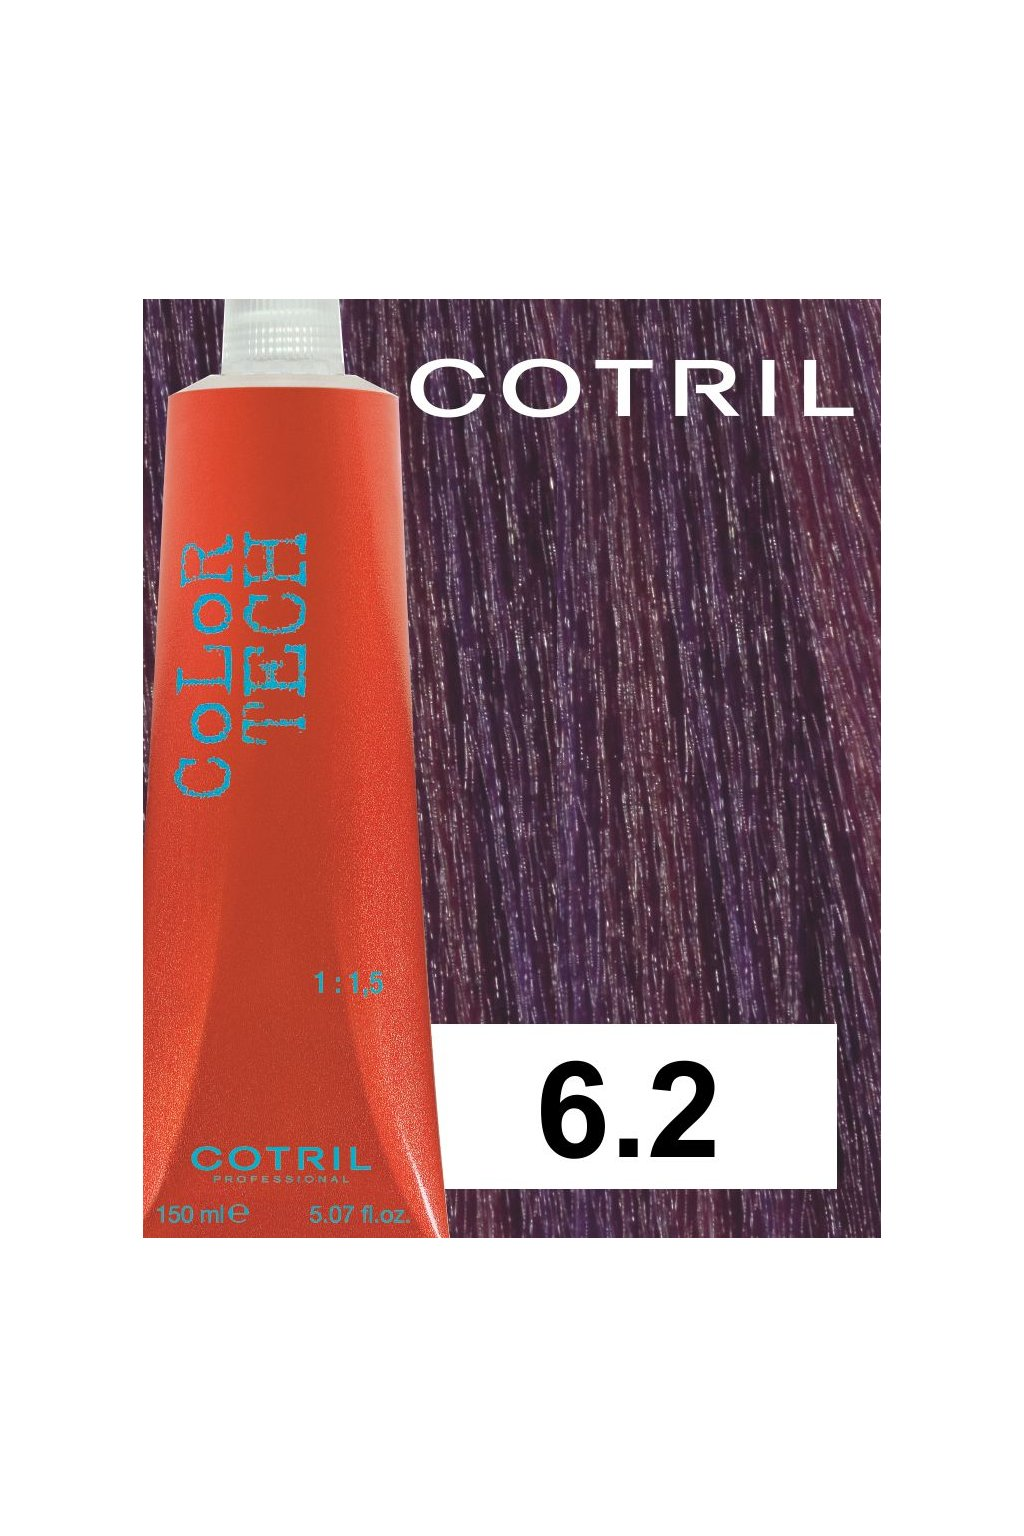 6 2 ct cotril